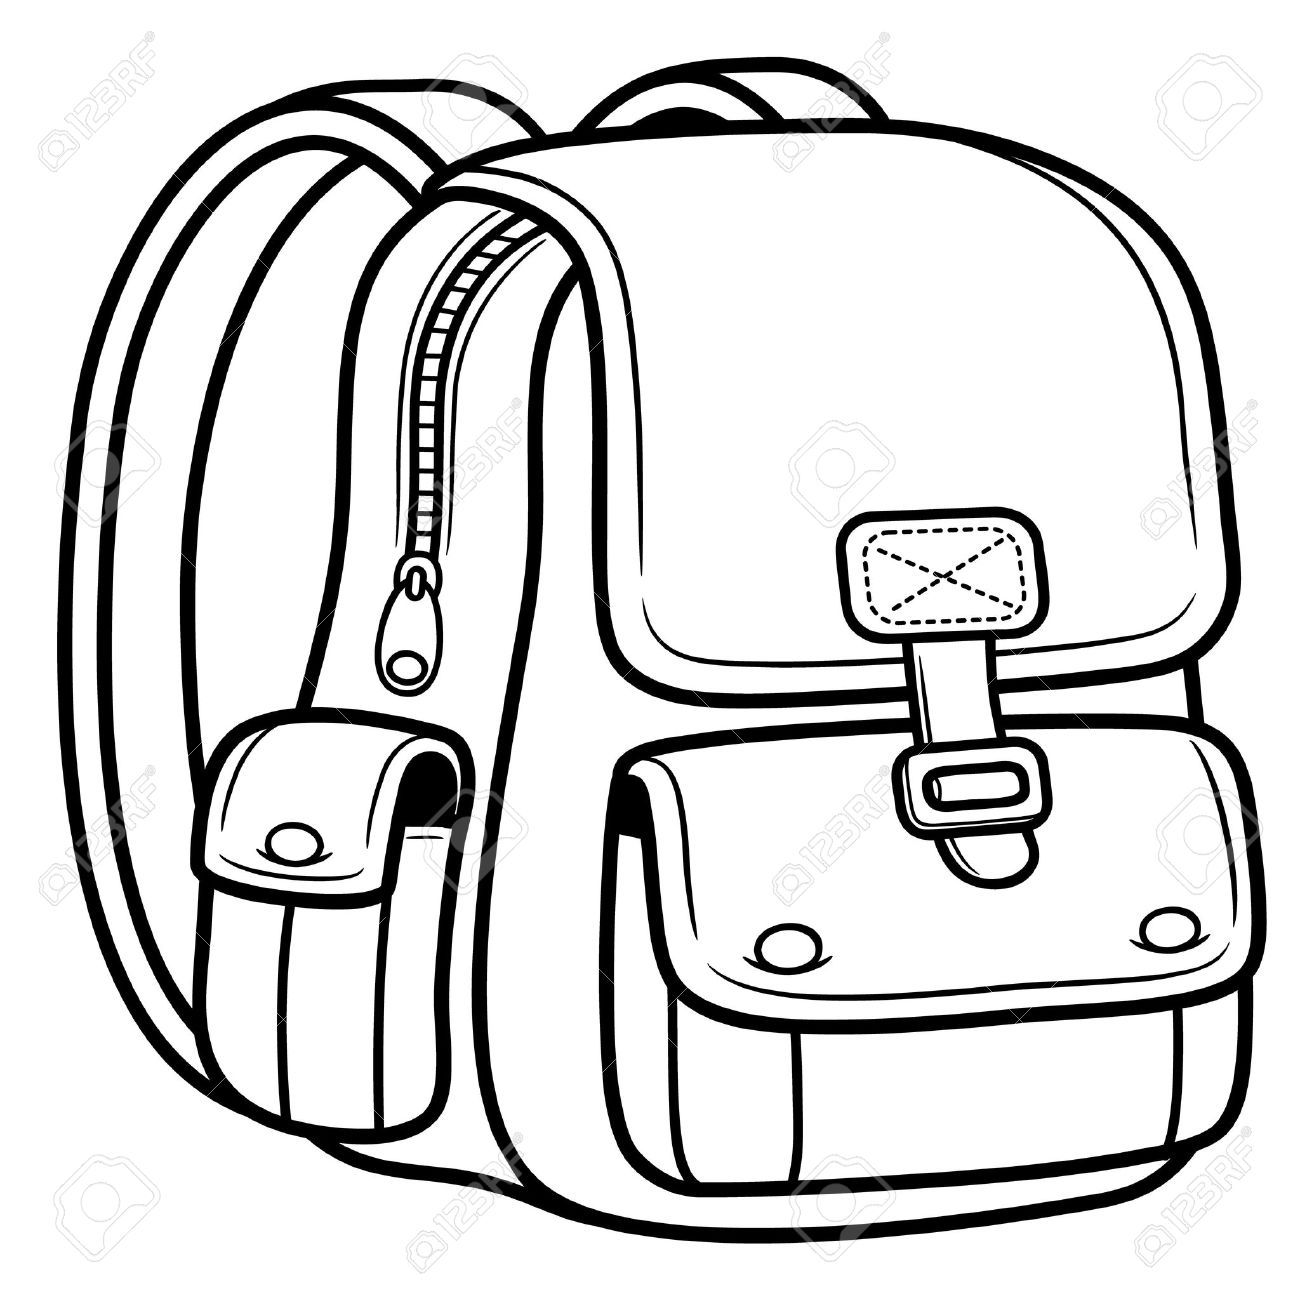 Clip Art Backpack Coloring Pages 1000 images about dominant on pinterest newspaper design free printable coloring pages and vintage